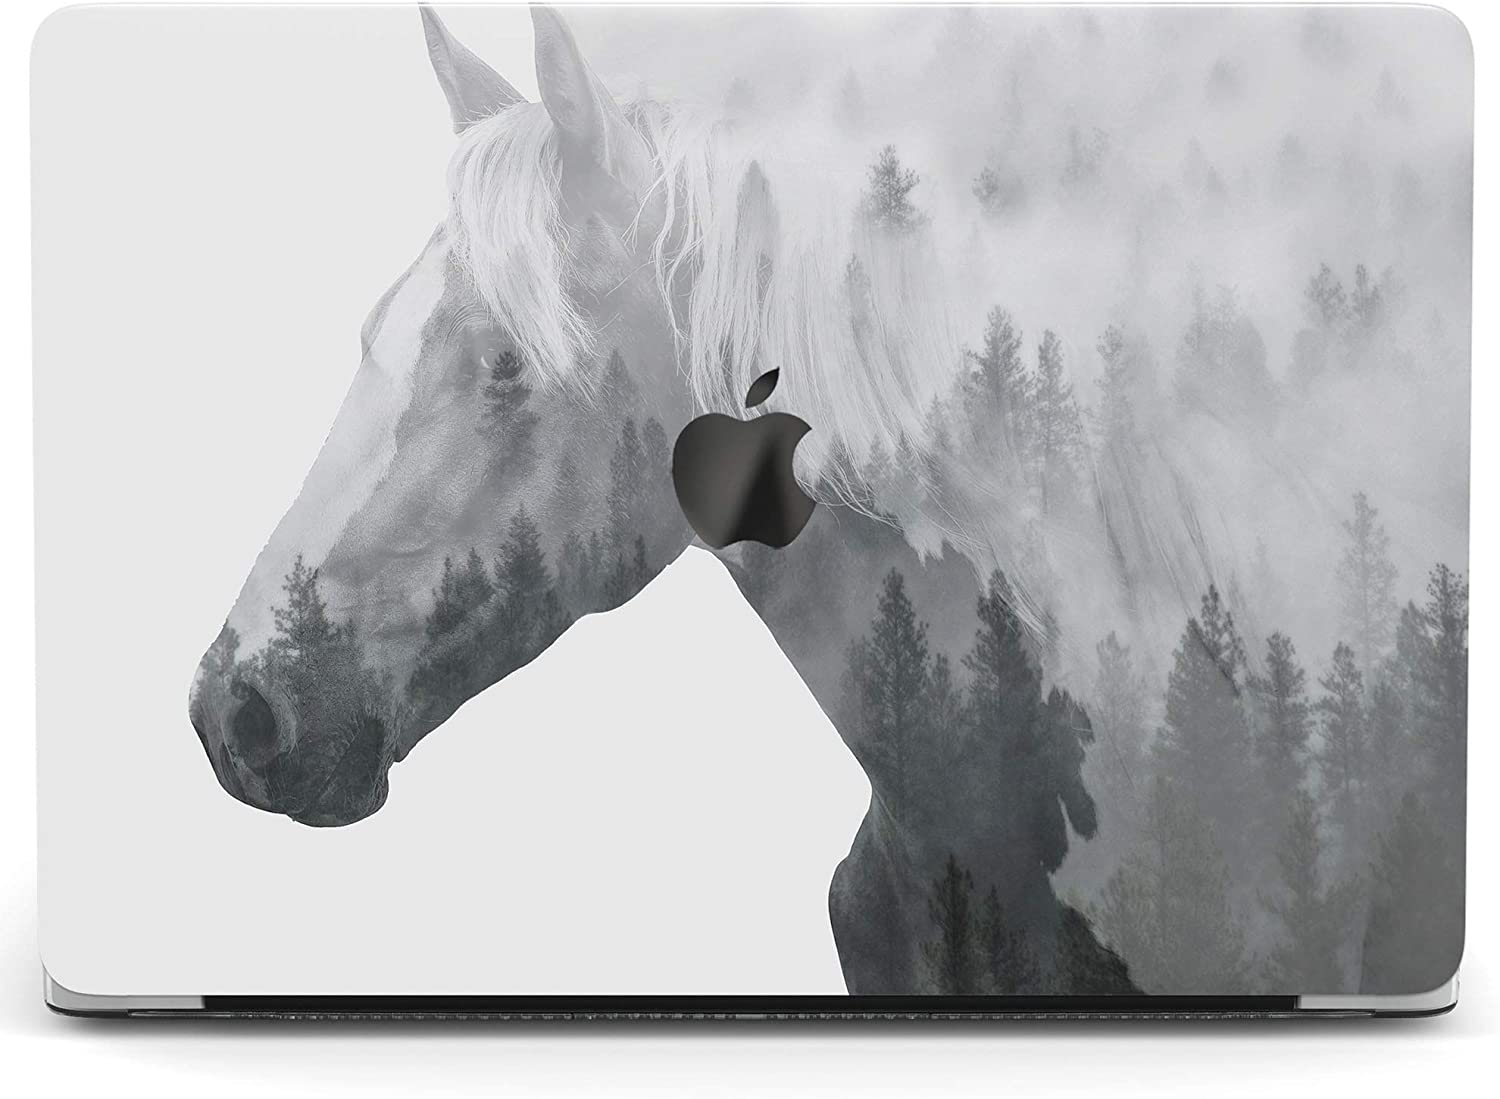 Wonder Wild Case For MacBook Air 13 inch Pro 15 2019 2018 Retina 12 11 Apple Hard Mac Protective Cover Touch Bar 2017 2016 2020 Plastic Laptop Print Abstract Horse Gray Forest Tree Nature Foggy Animal